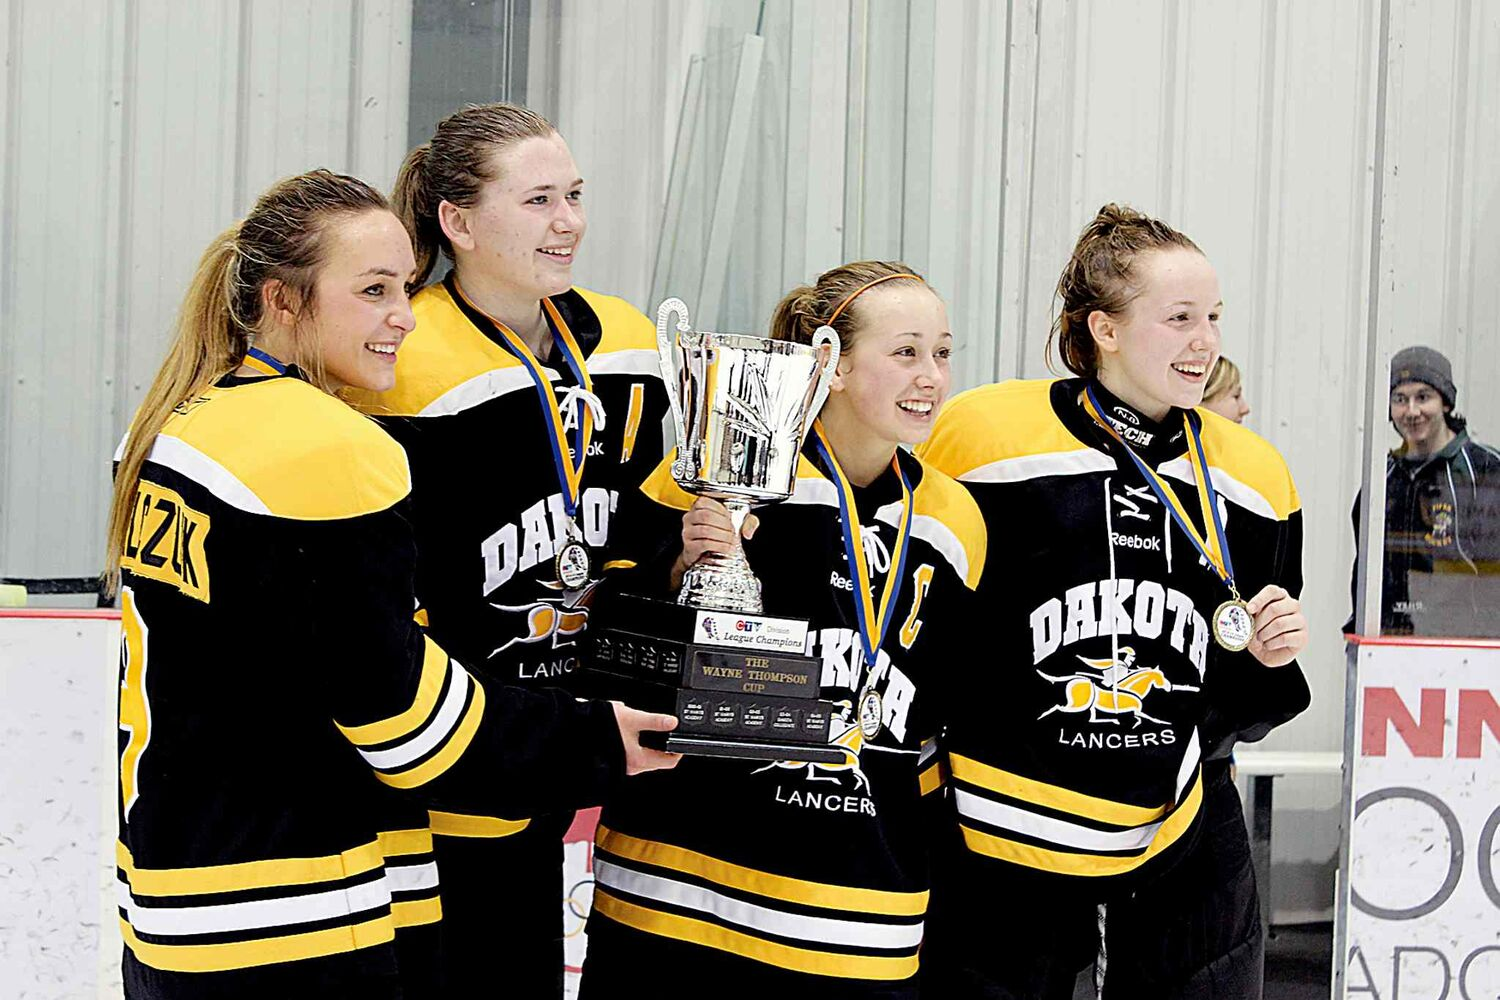 The Dakota Lancers defeated the Fort Richmond Centurions 2-0 in the WWHSHL Division A Championships March 13, 2014. From Left: Mackenzie Kowalczuk, Trina Allard, Madison Stratton, and Ashten Vankoughnett. (Steph Crosier)